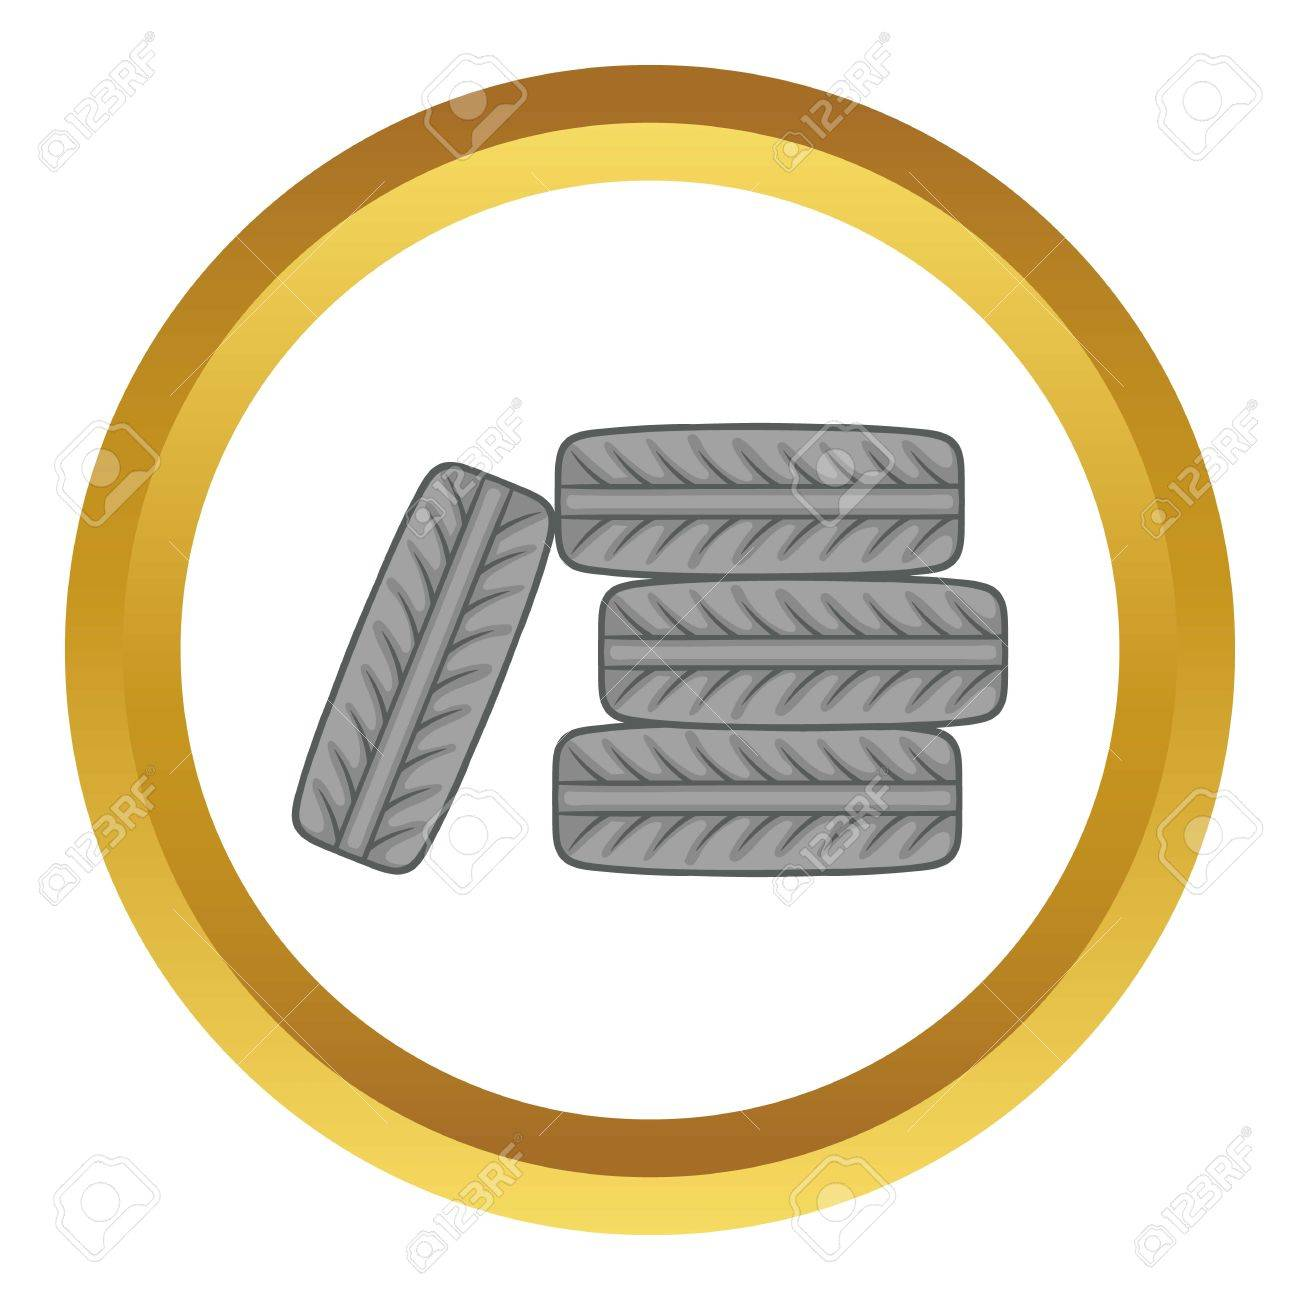 pile of black tires vector icon in golden circle cartoon style